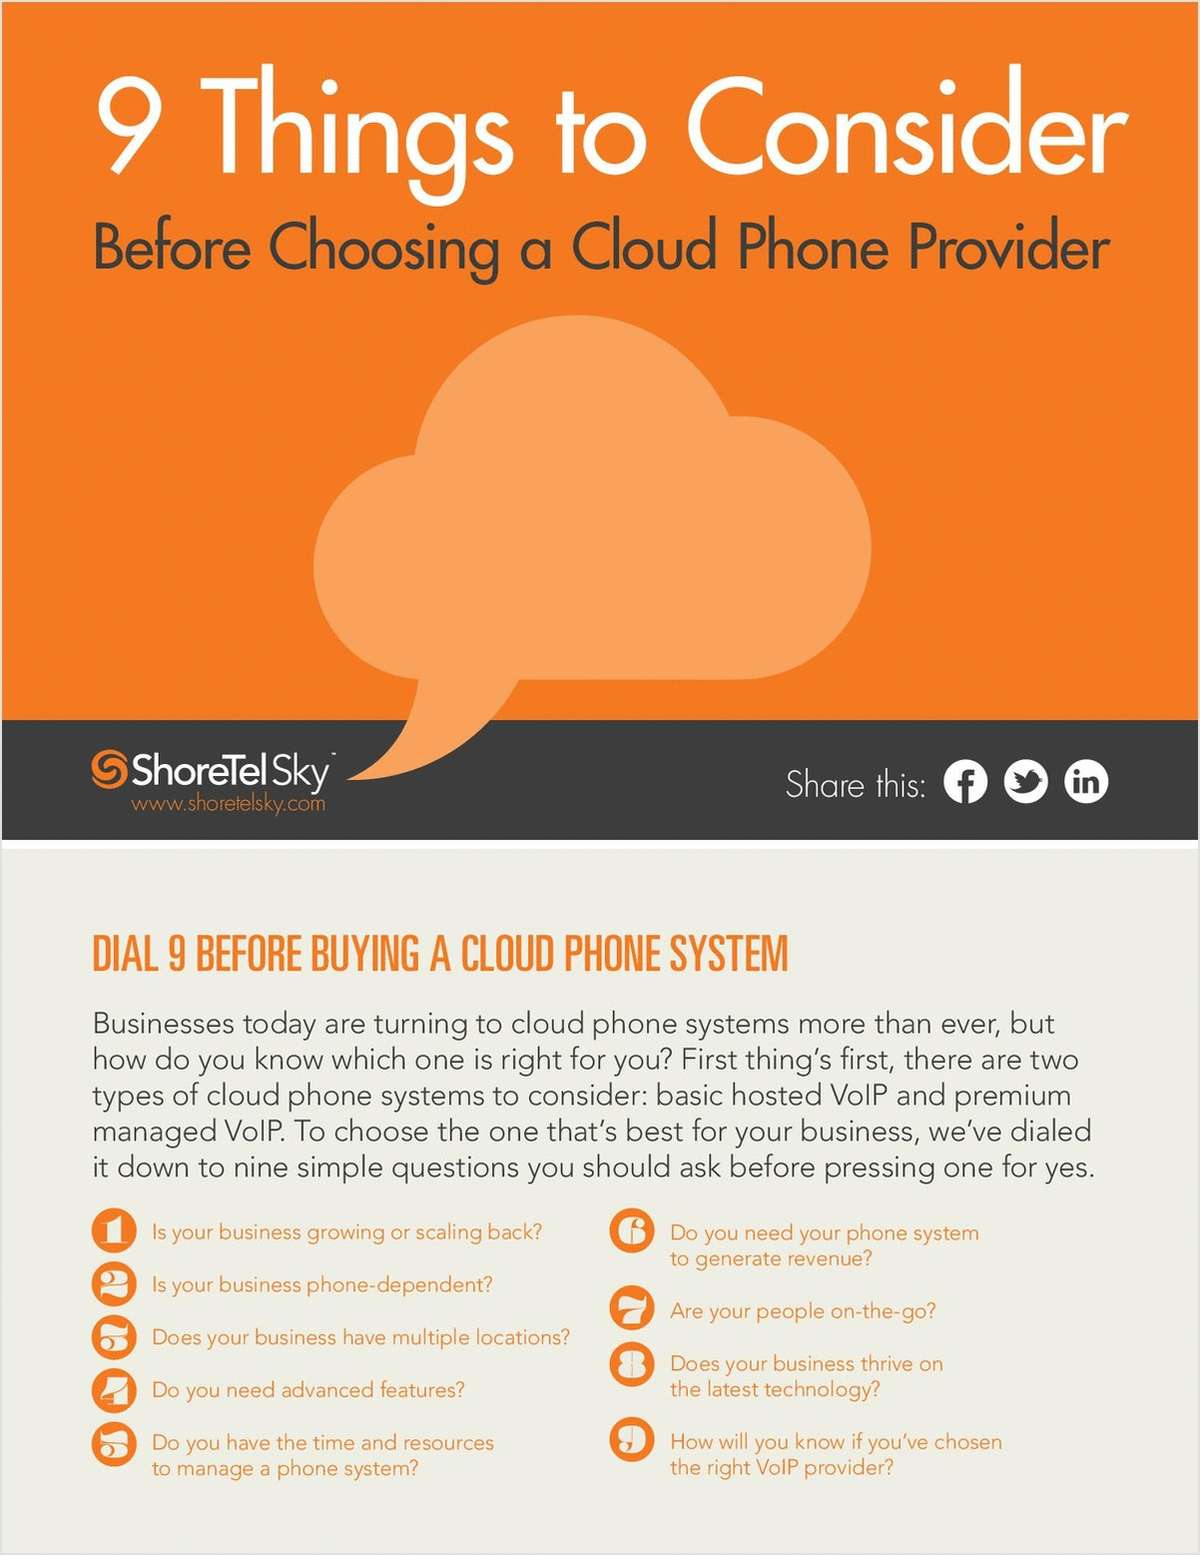 9 Things to Consider Before Choosing a Cloud Phone Provider